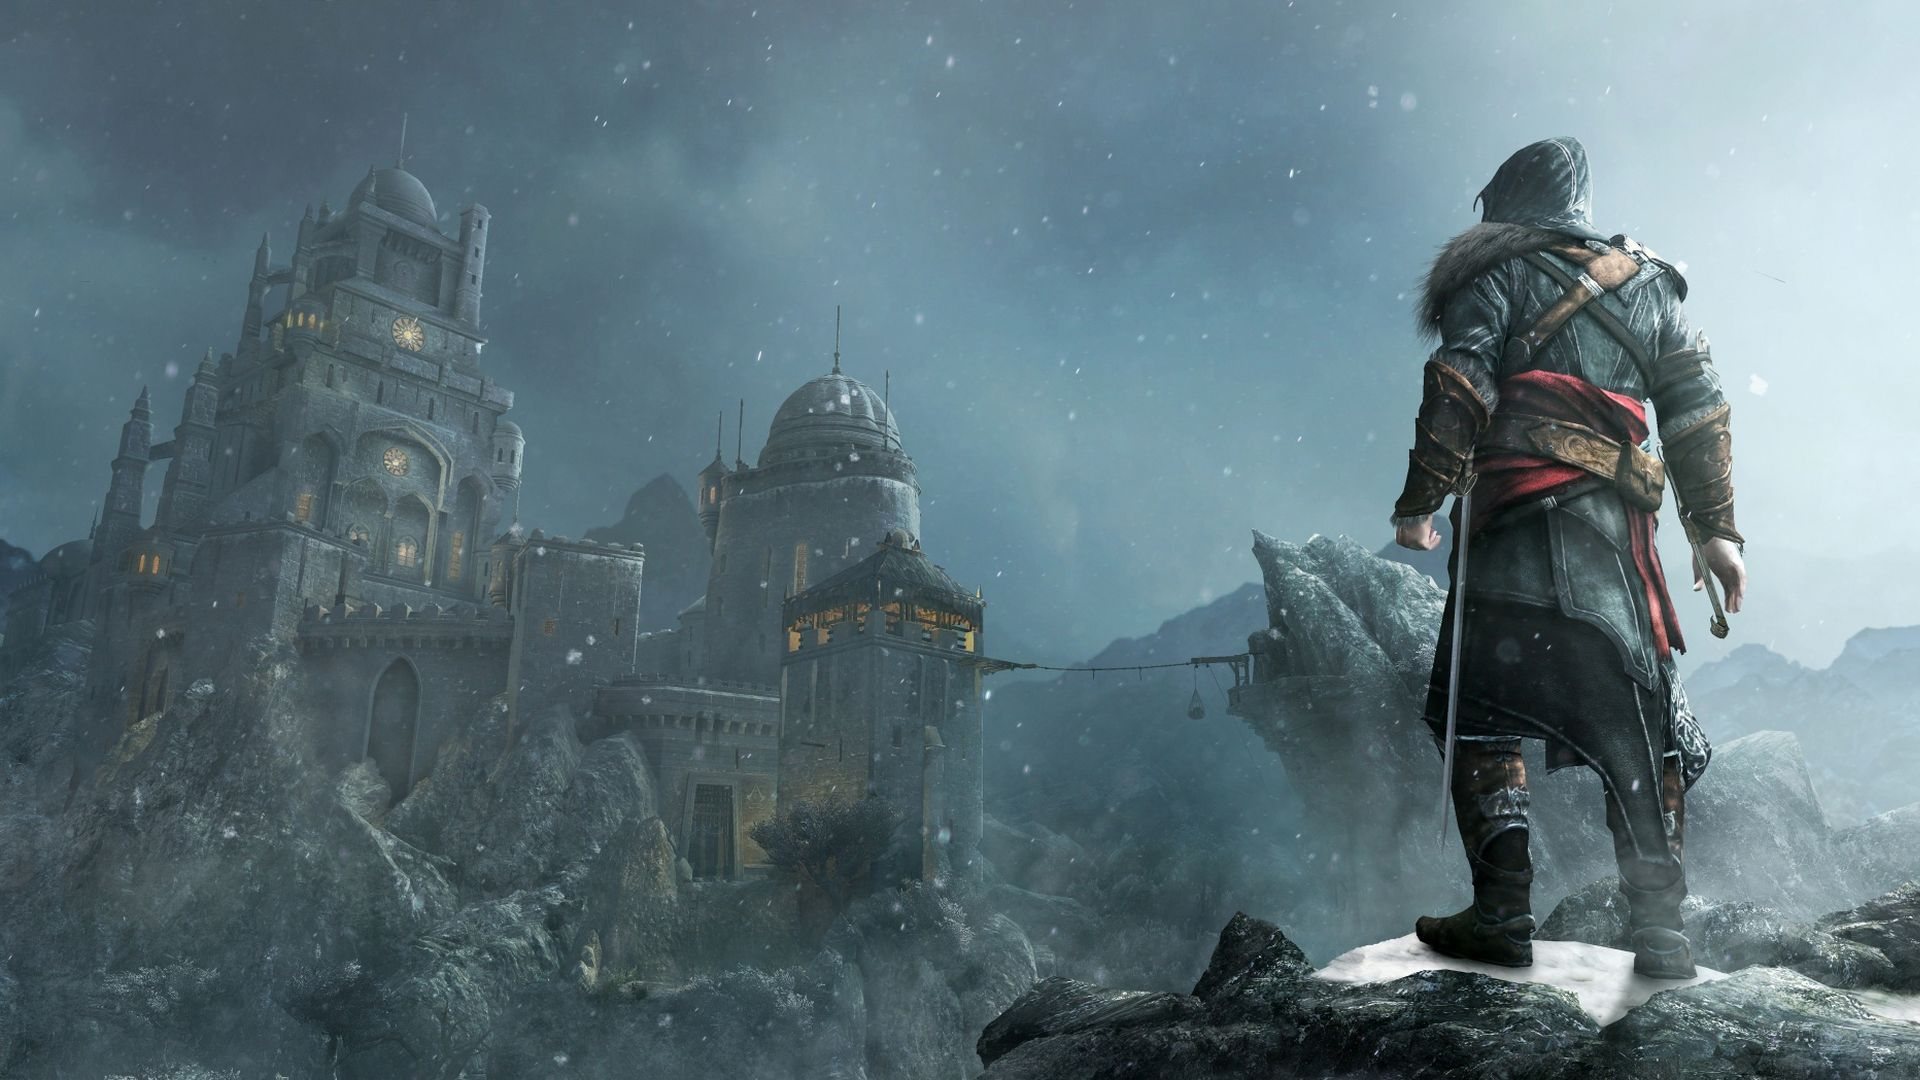 masyaf_discovery___assassins_creed_revelations-wallpaper-1920x1080.jpg